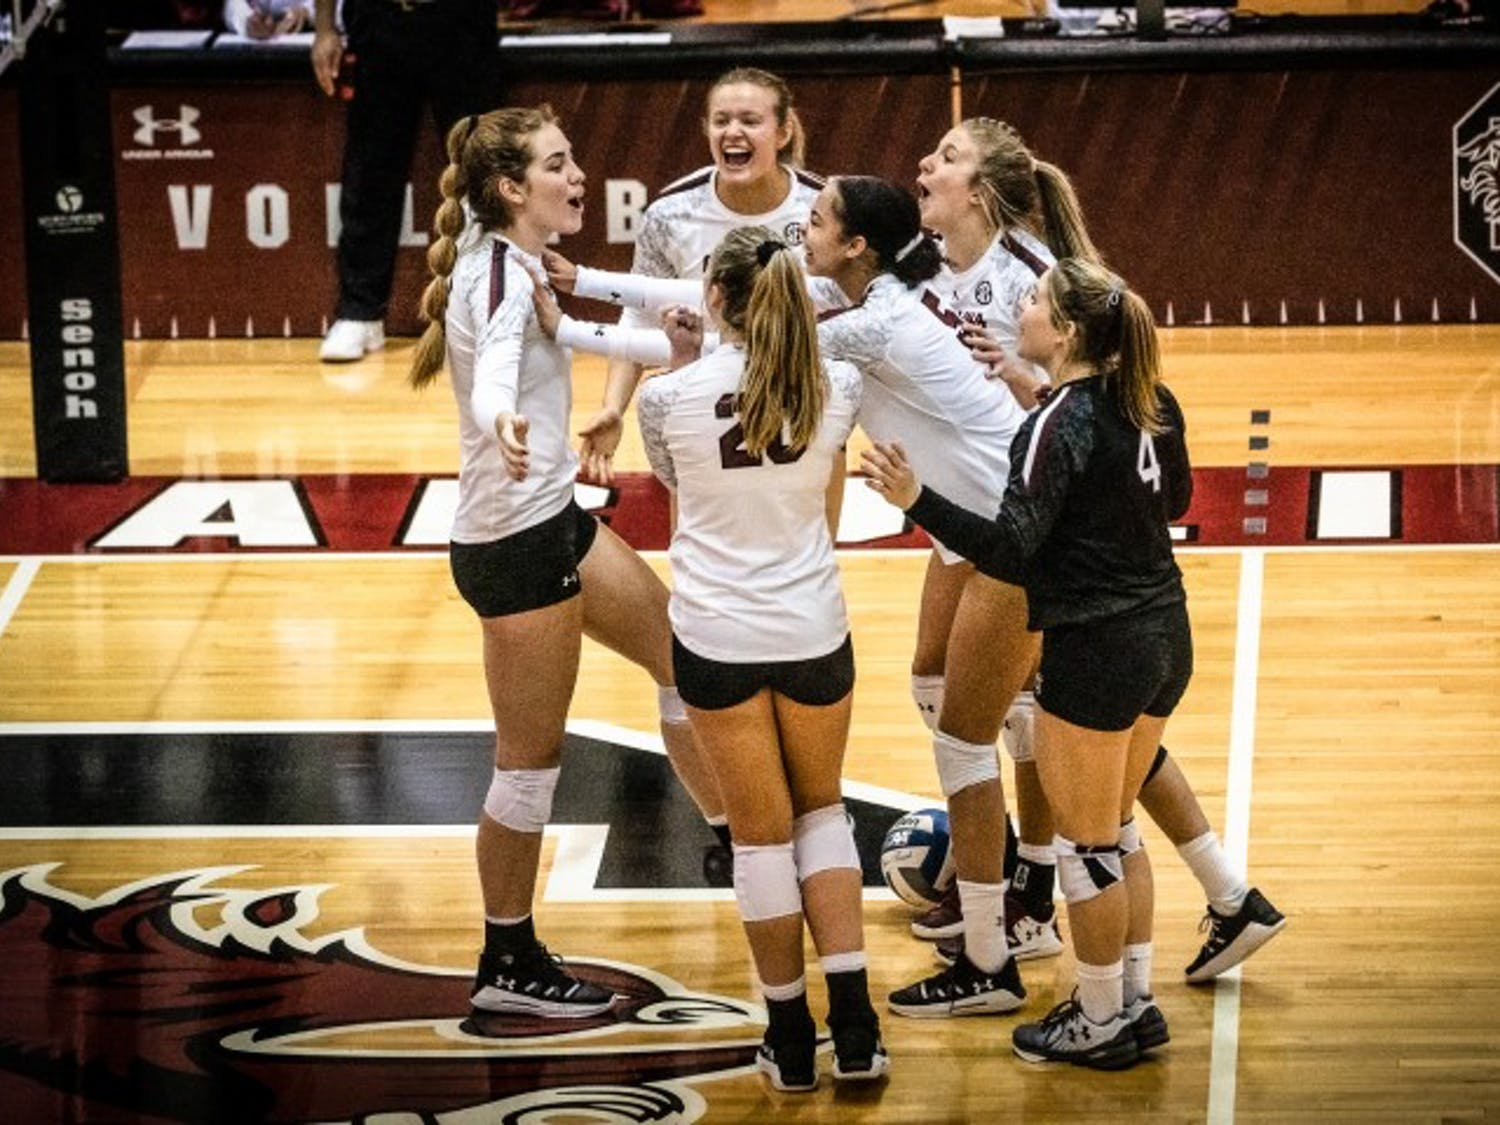 Members of the South Carolina volleyball team celebrate after scoring against Ole Miss.